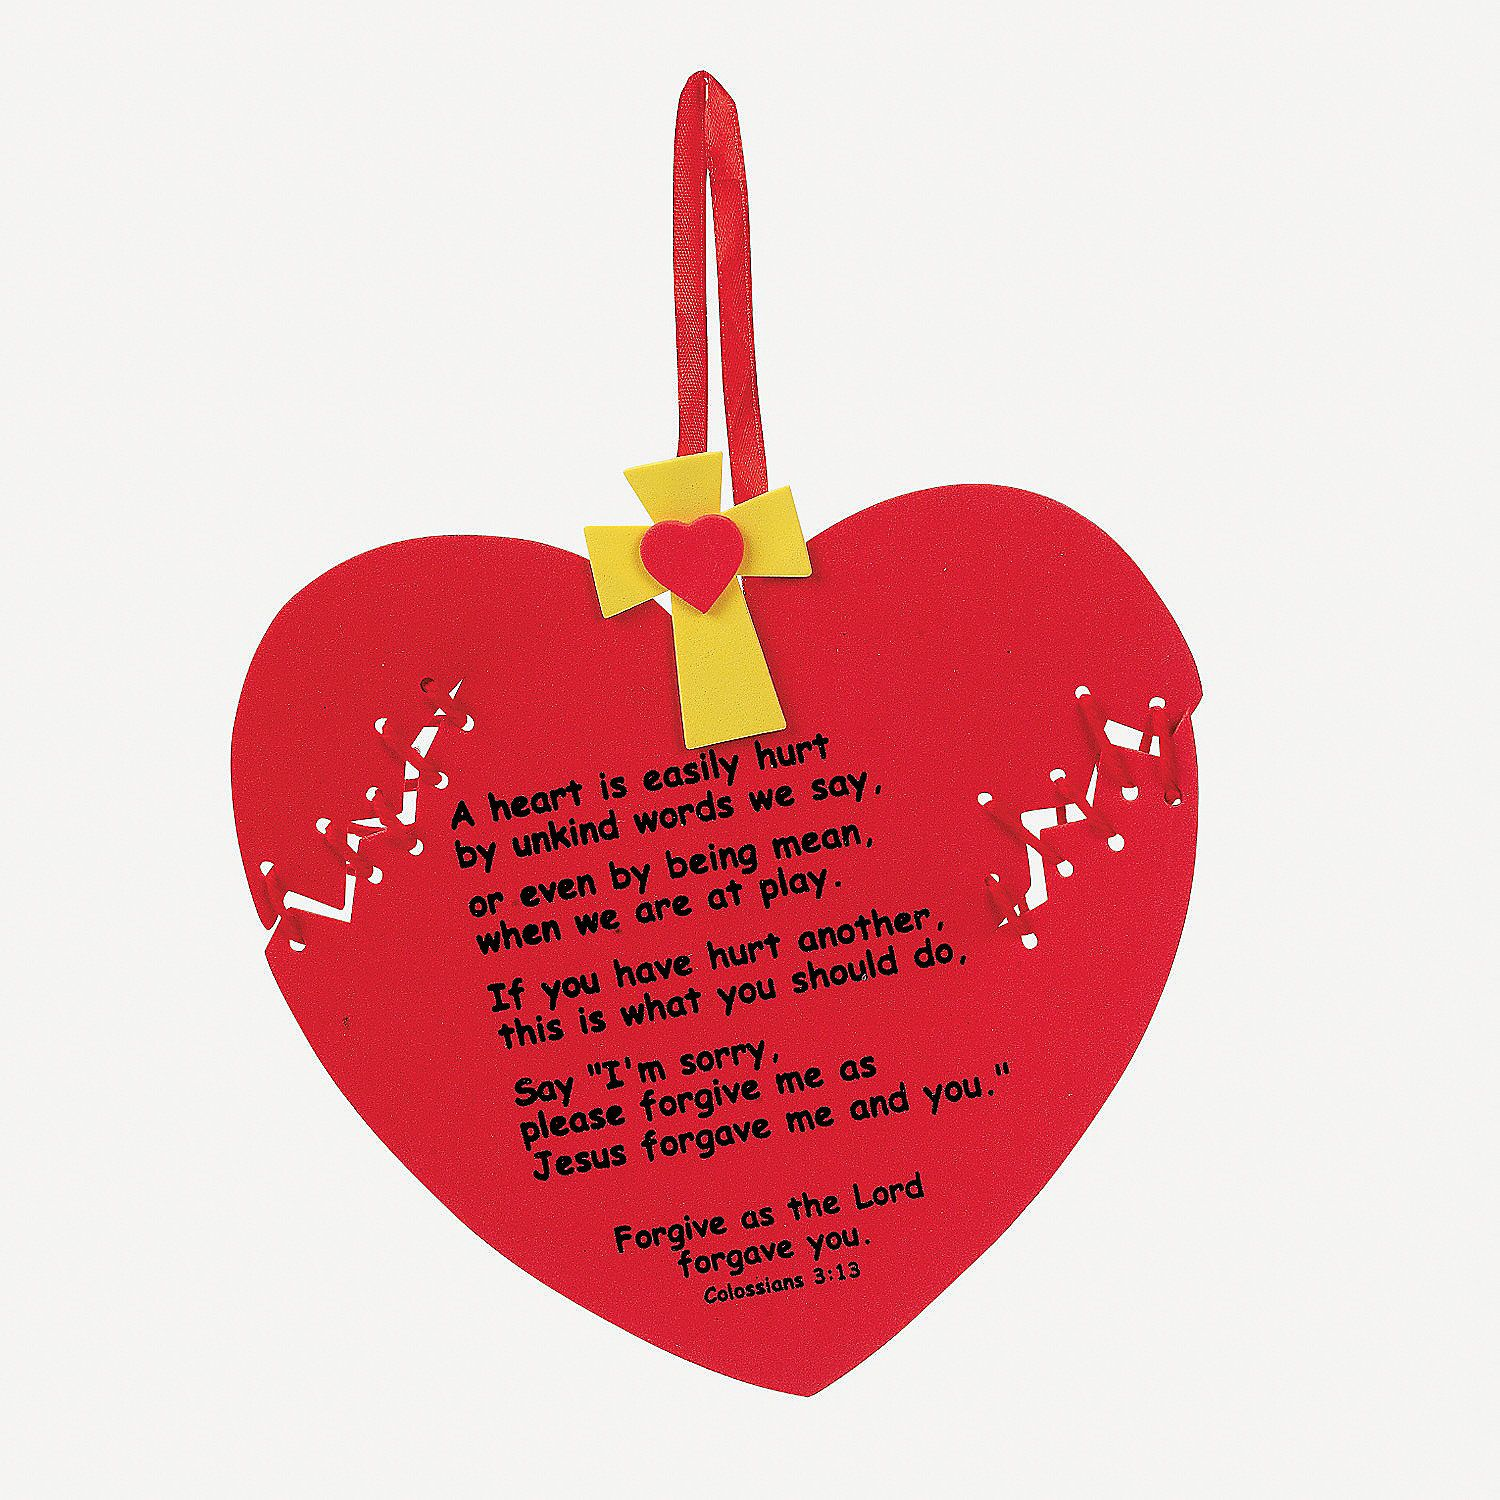 forgiveness heart craft kit kit discontinued from oriental trading but the poem and basic - Christian Valentine Crafts